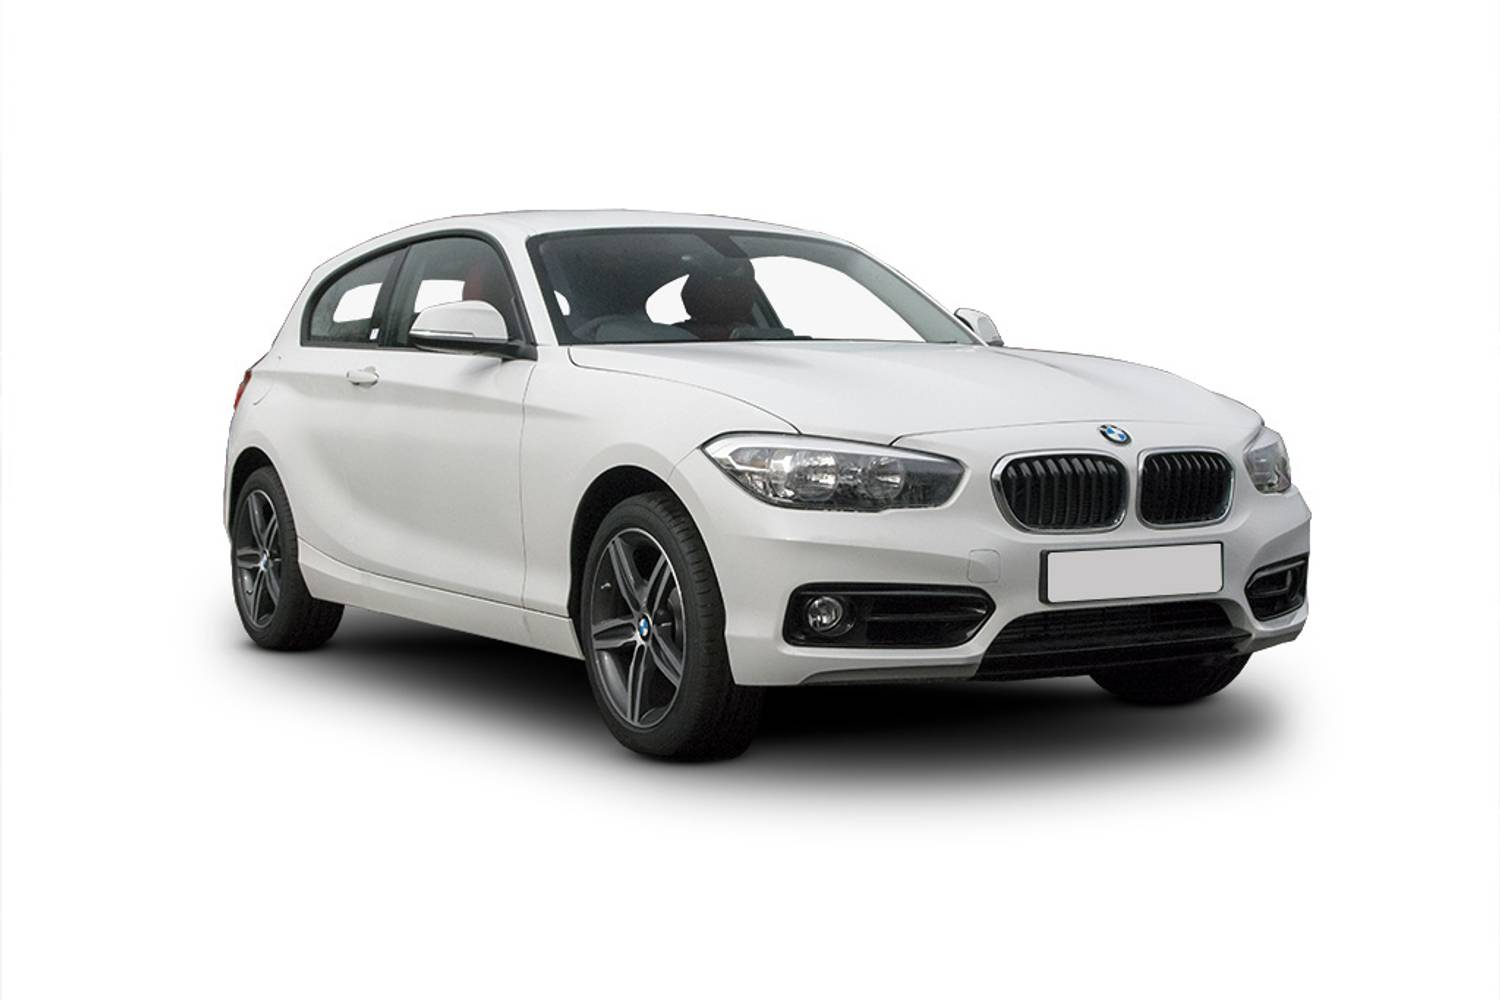 BMW 1 Series Hatchback 3dr Front Three Quarter